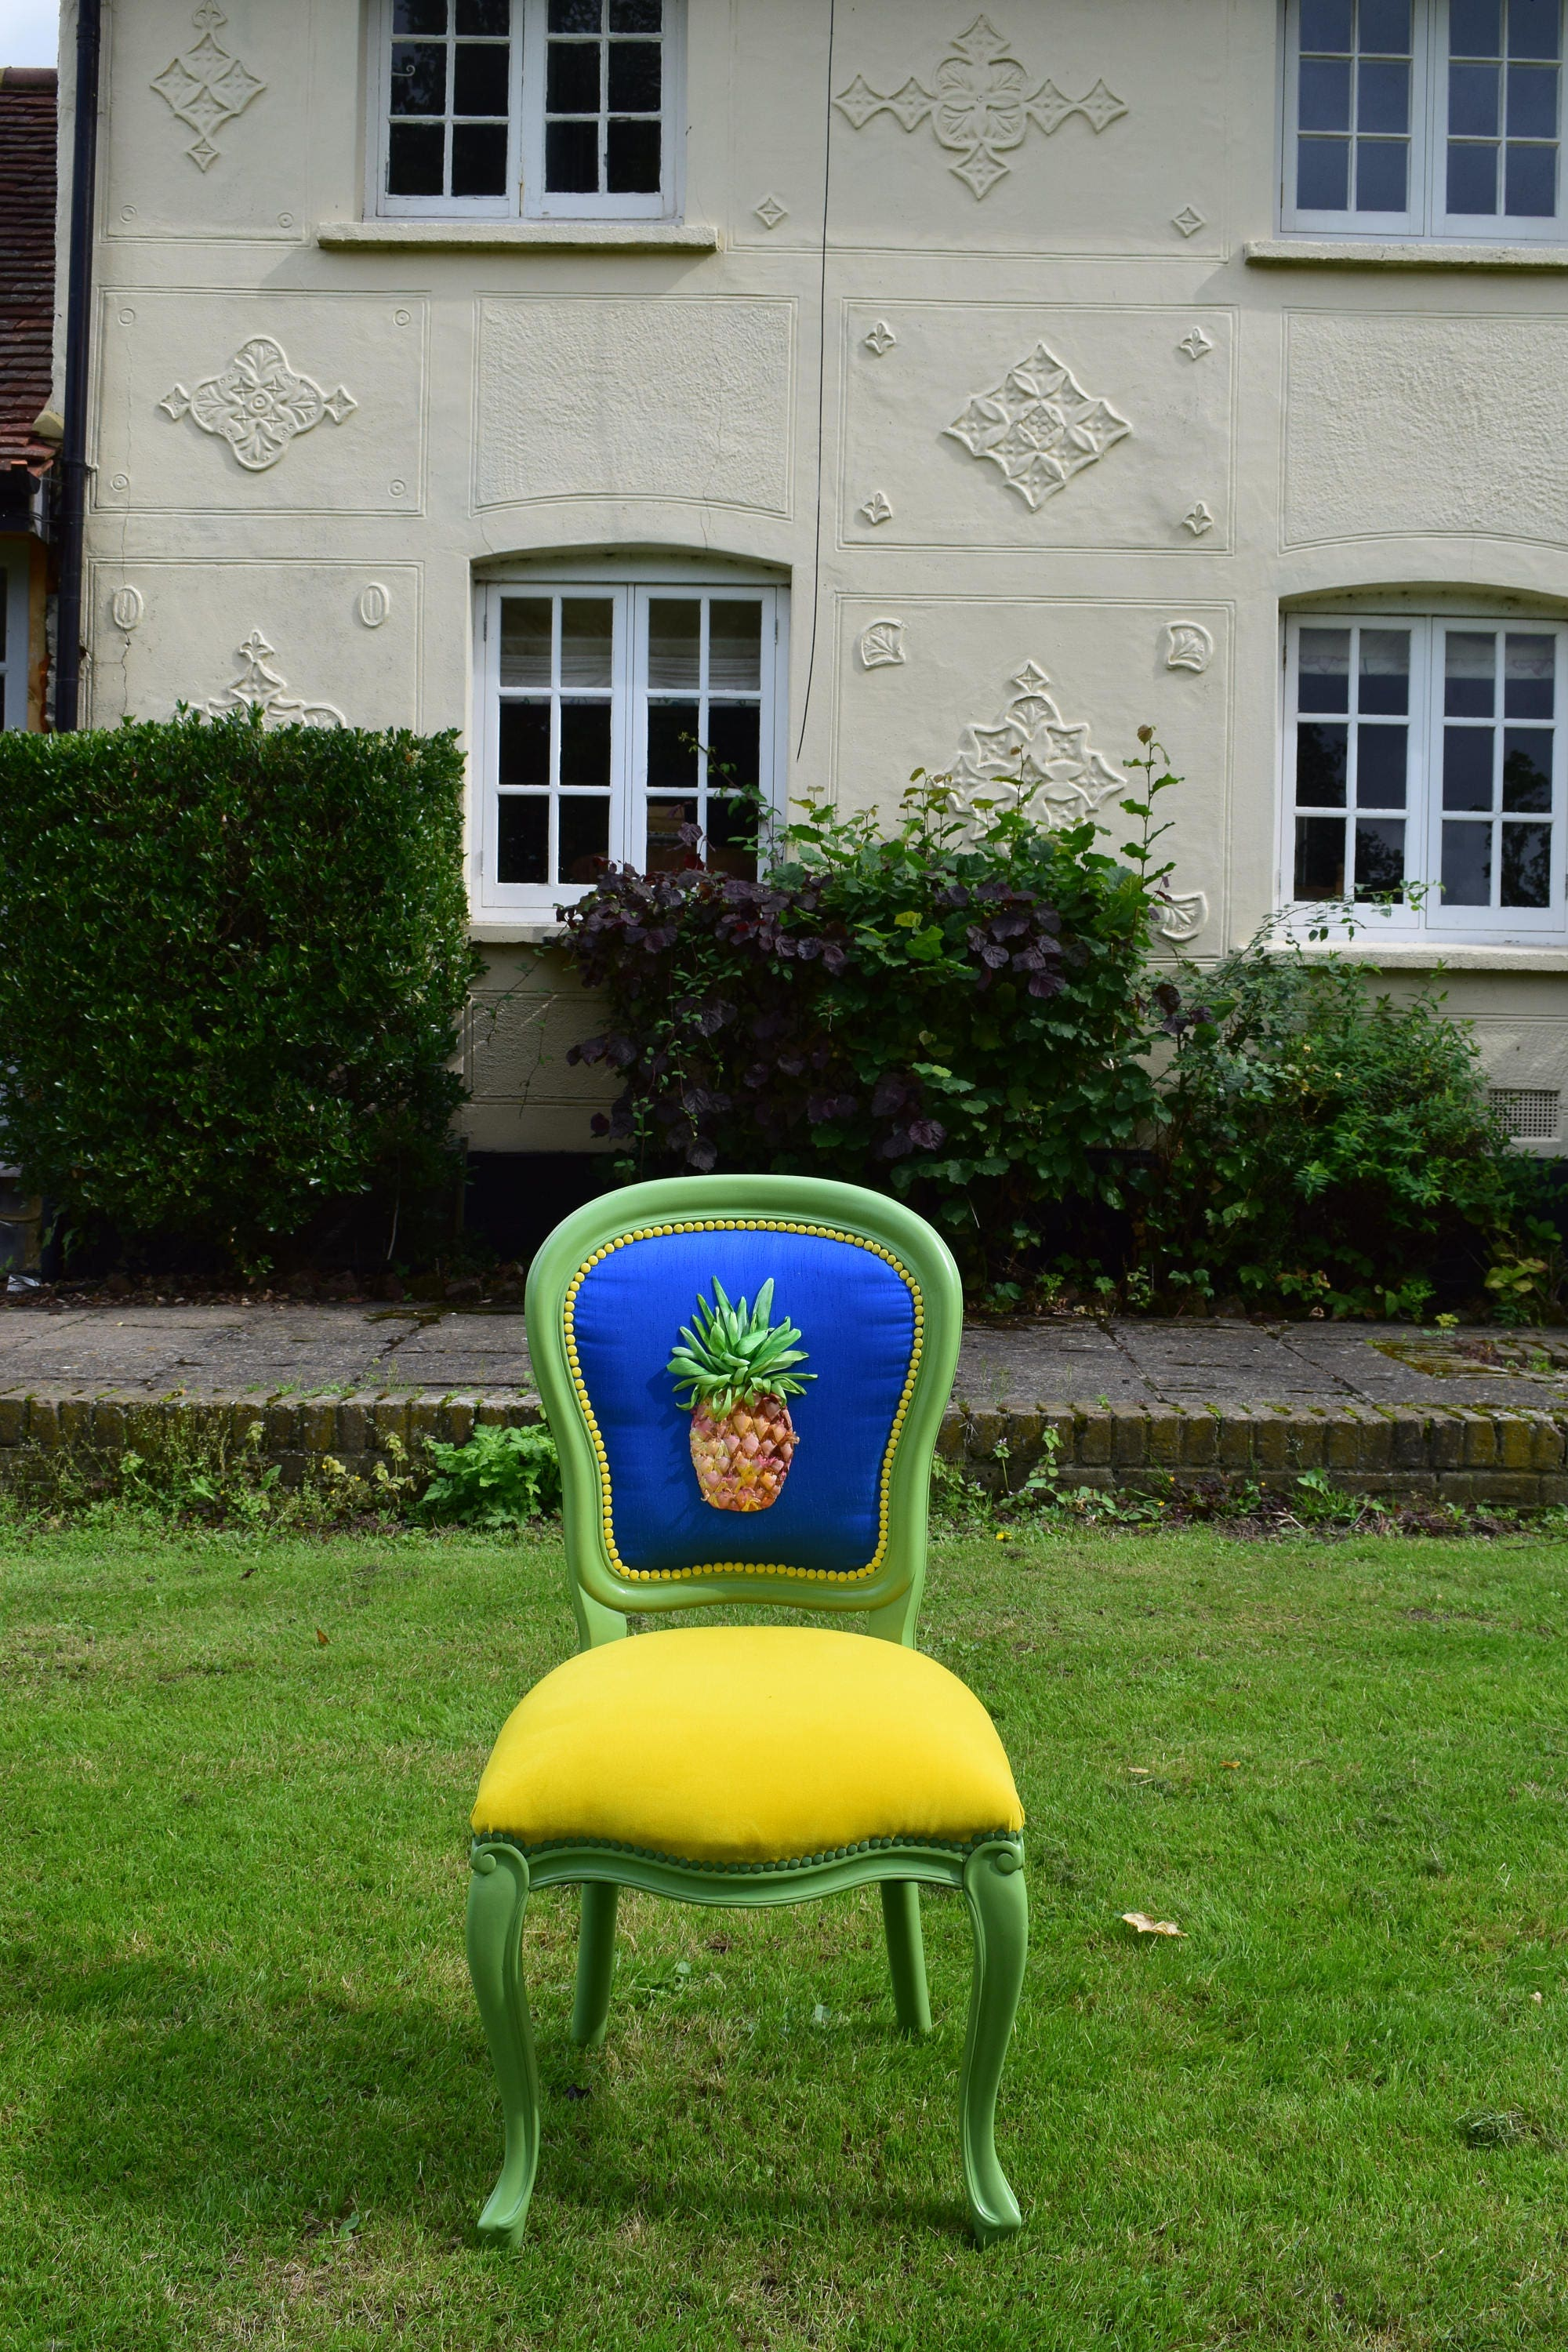 Statement chair Pineapple chairQuirky chairUnusual